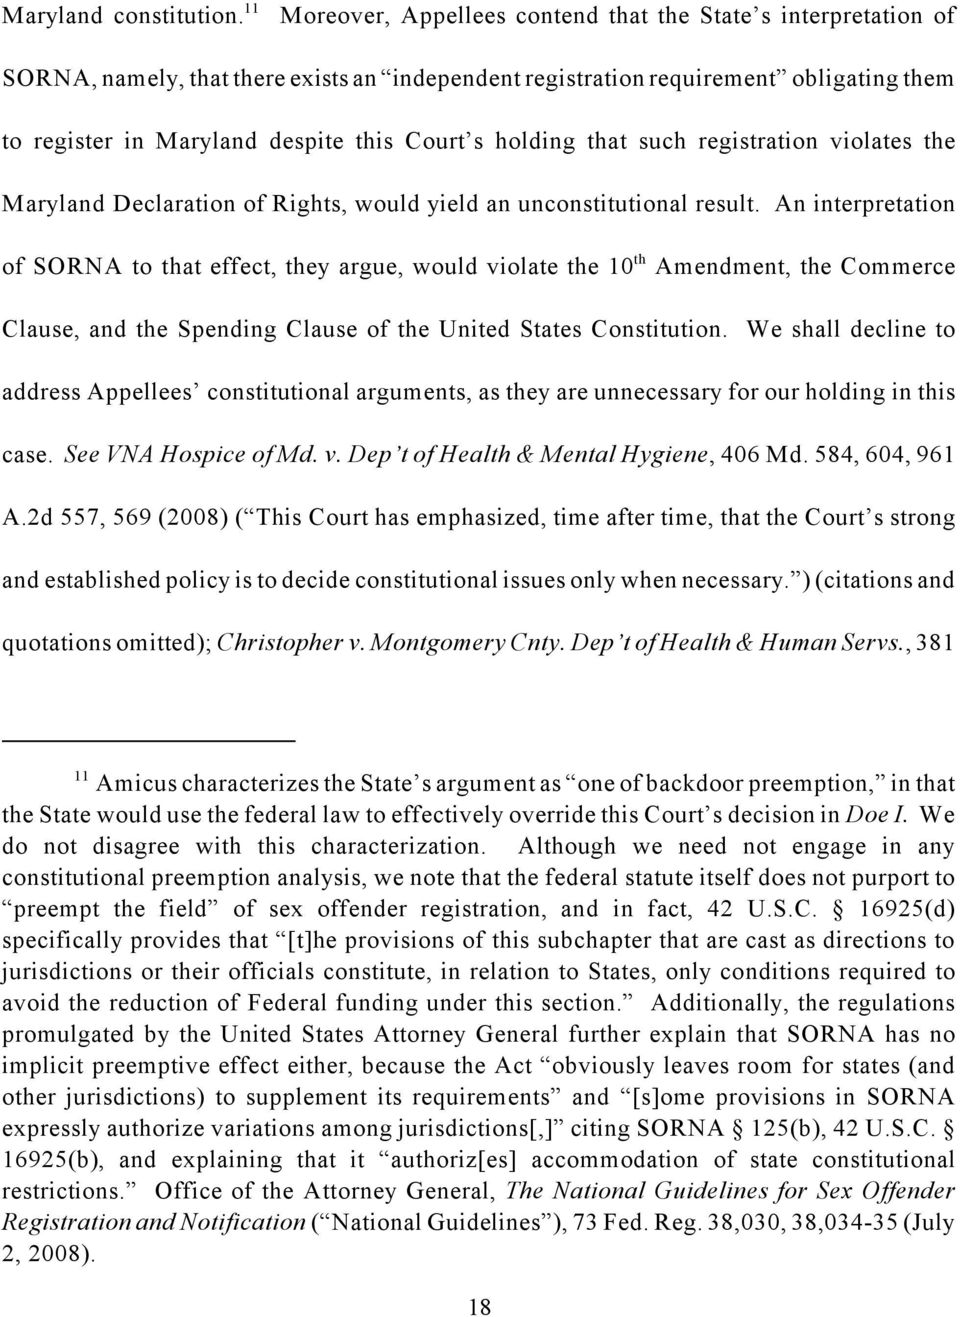 holding that such registration violates the Maryland Declaration of Rights, would yield an unconstitutional result.